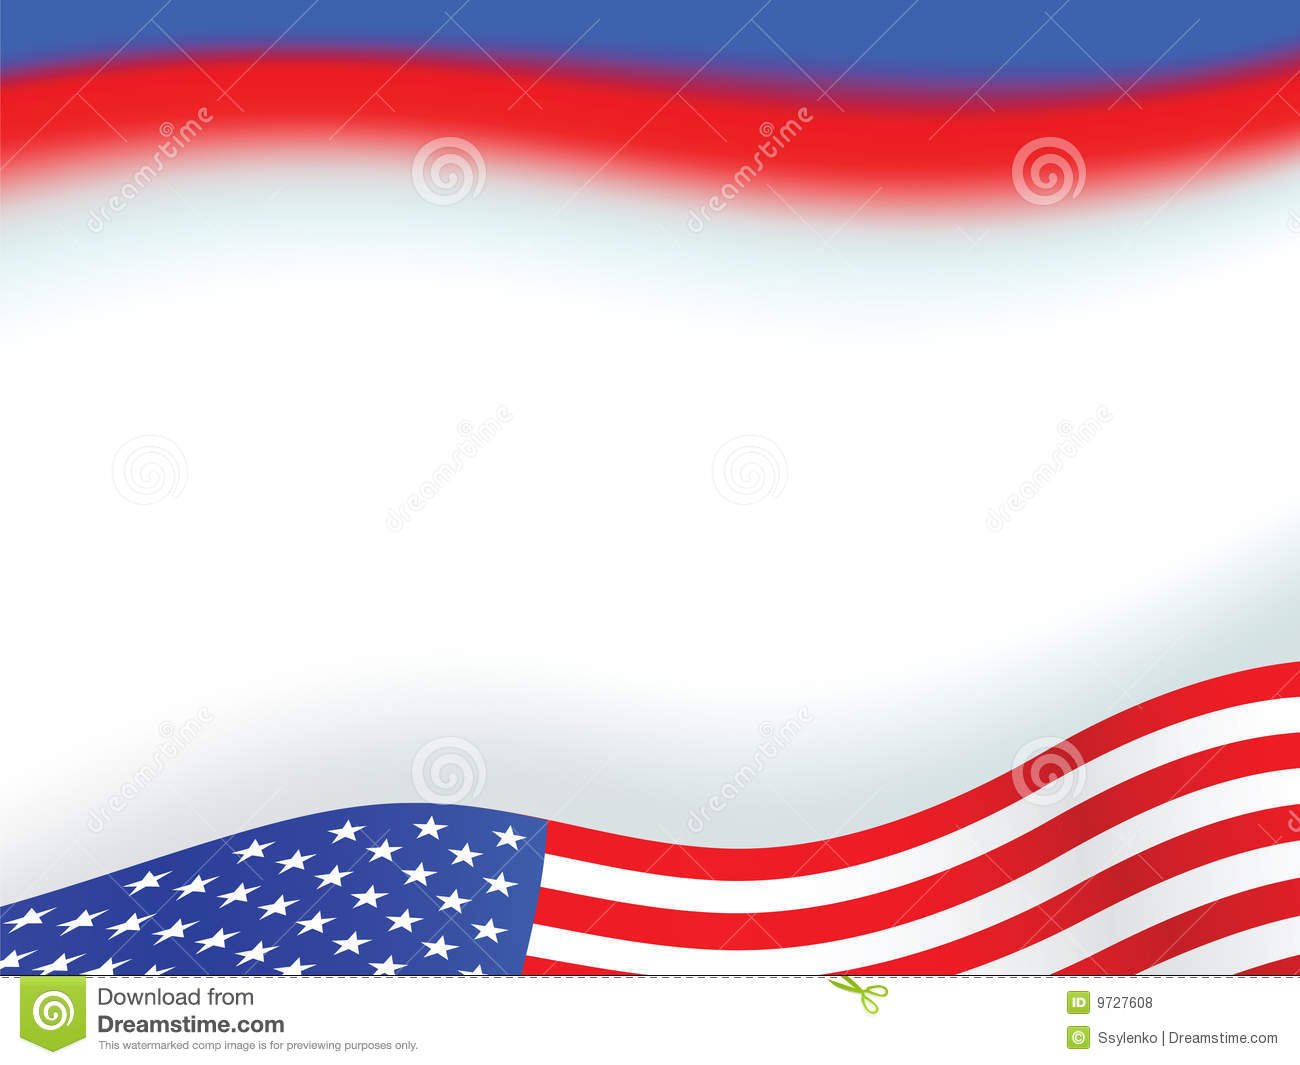 American Flag Background Royalty Free Stock Photos - Image: 9727608